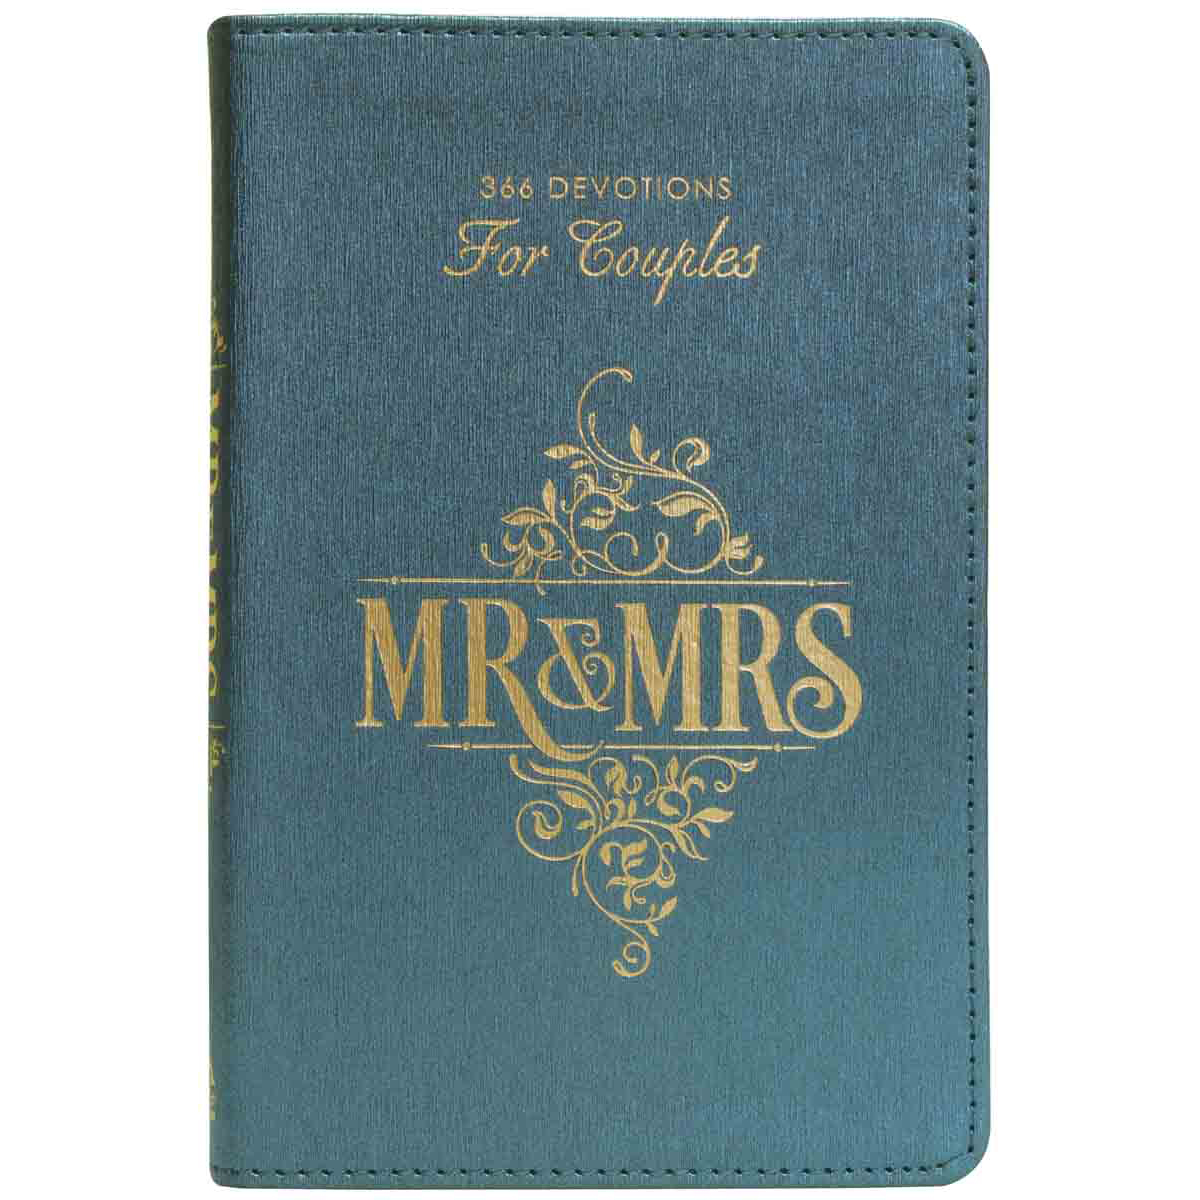 Mr & Mrs 366 Devotions For Couples (LuxLeather)